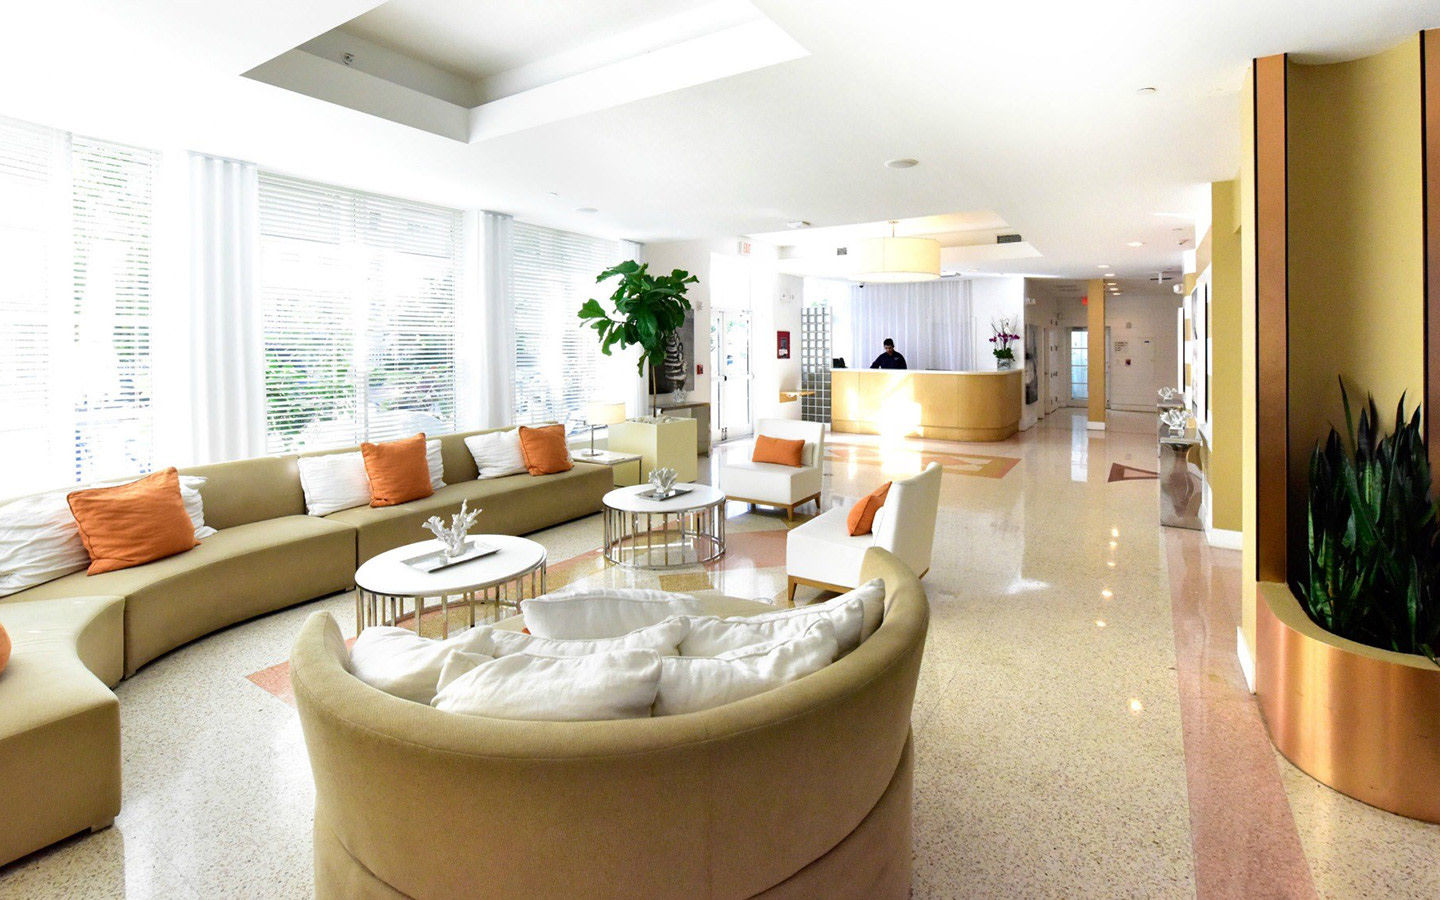 Pestana South Beach lobby